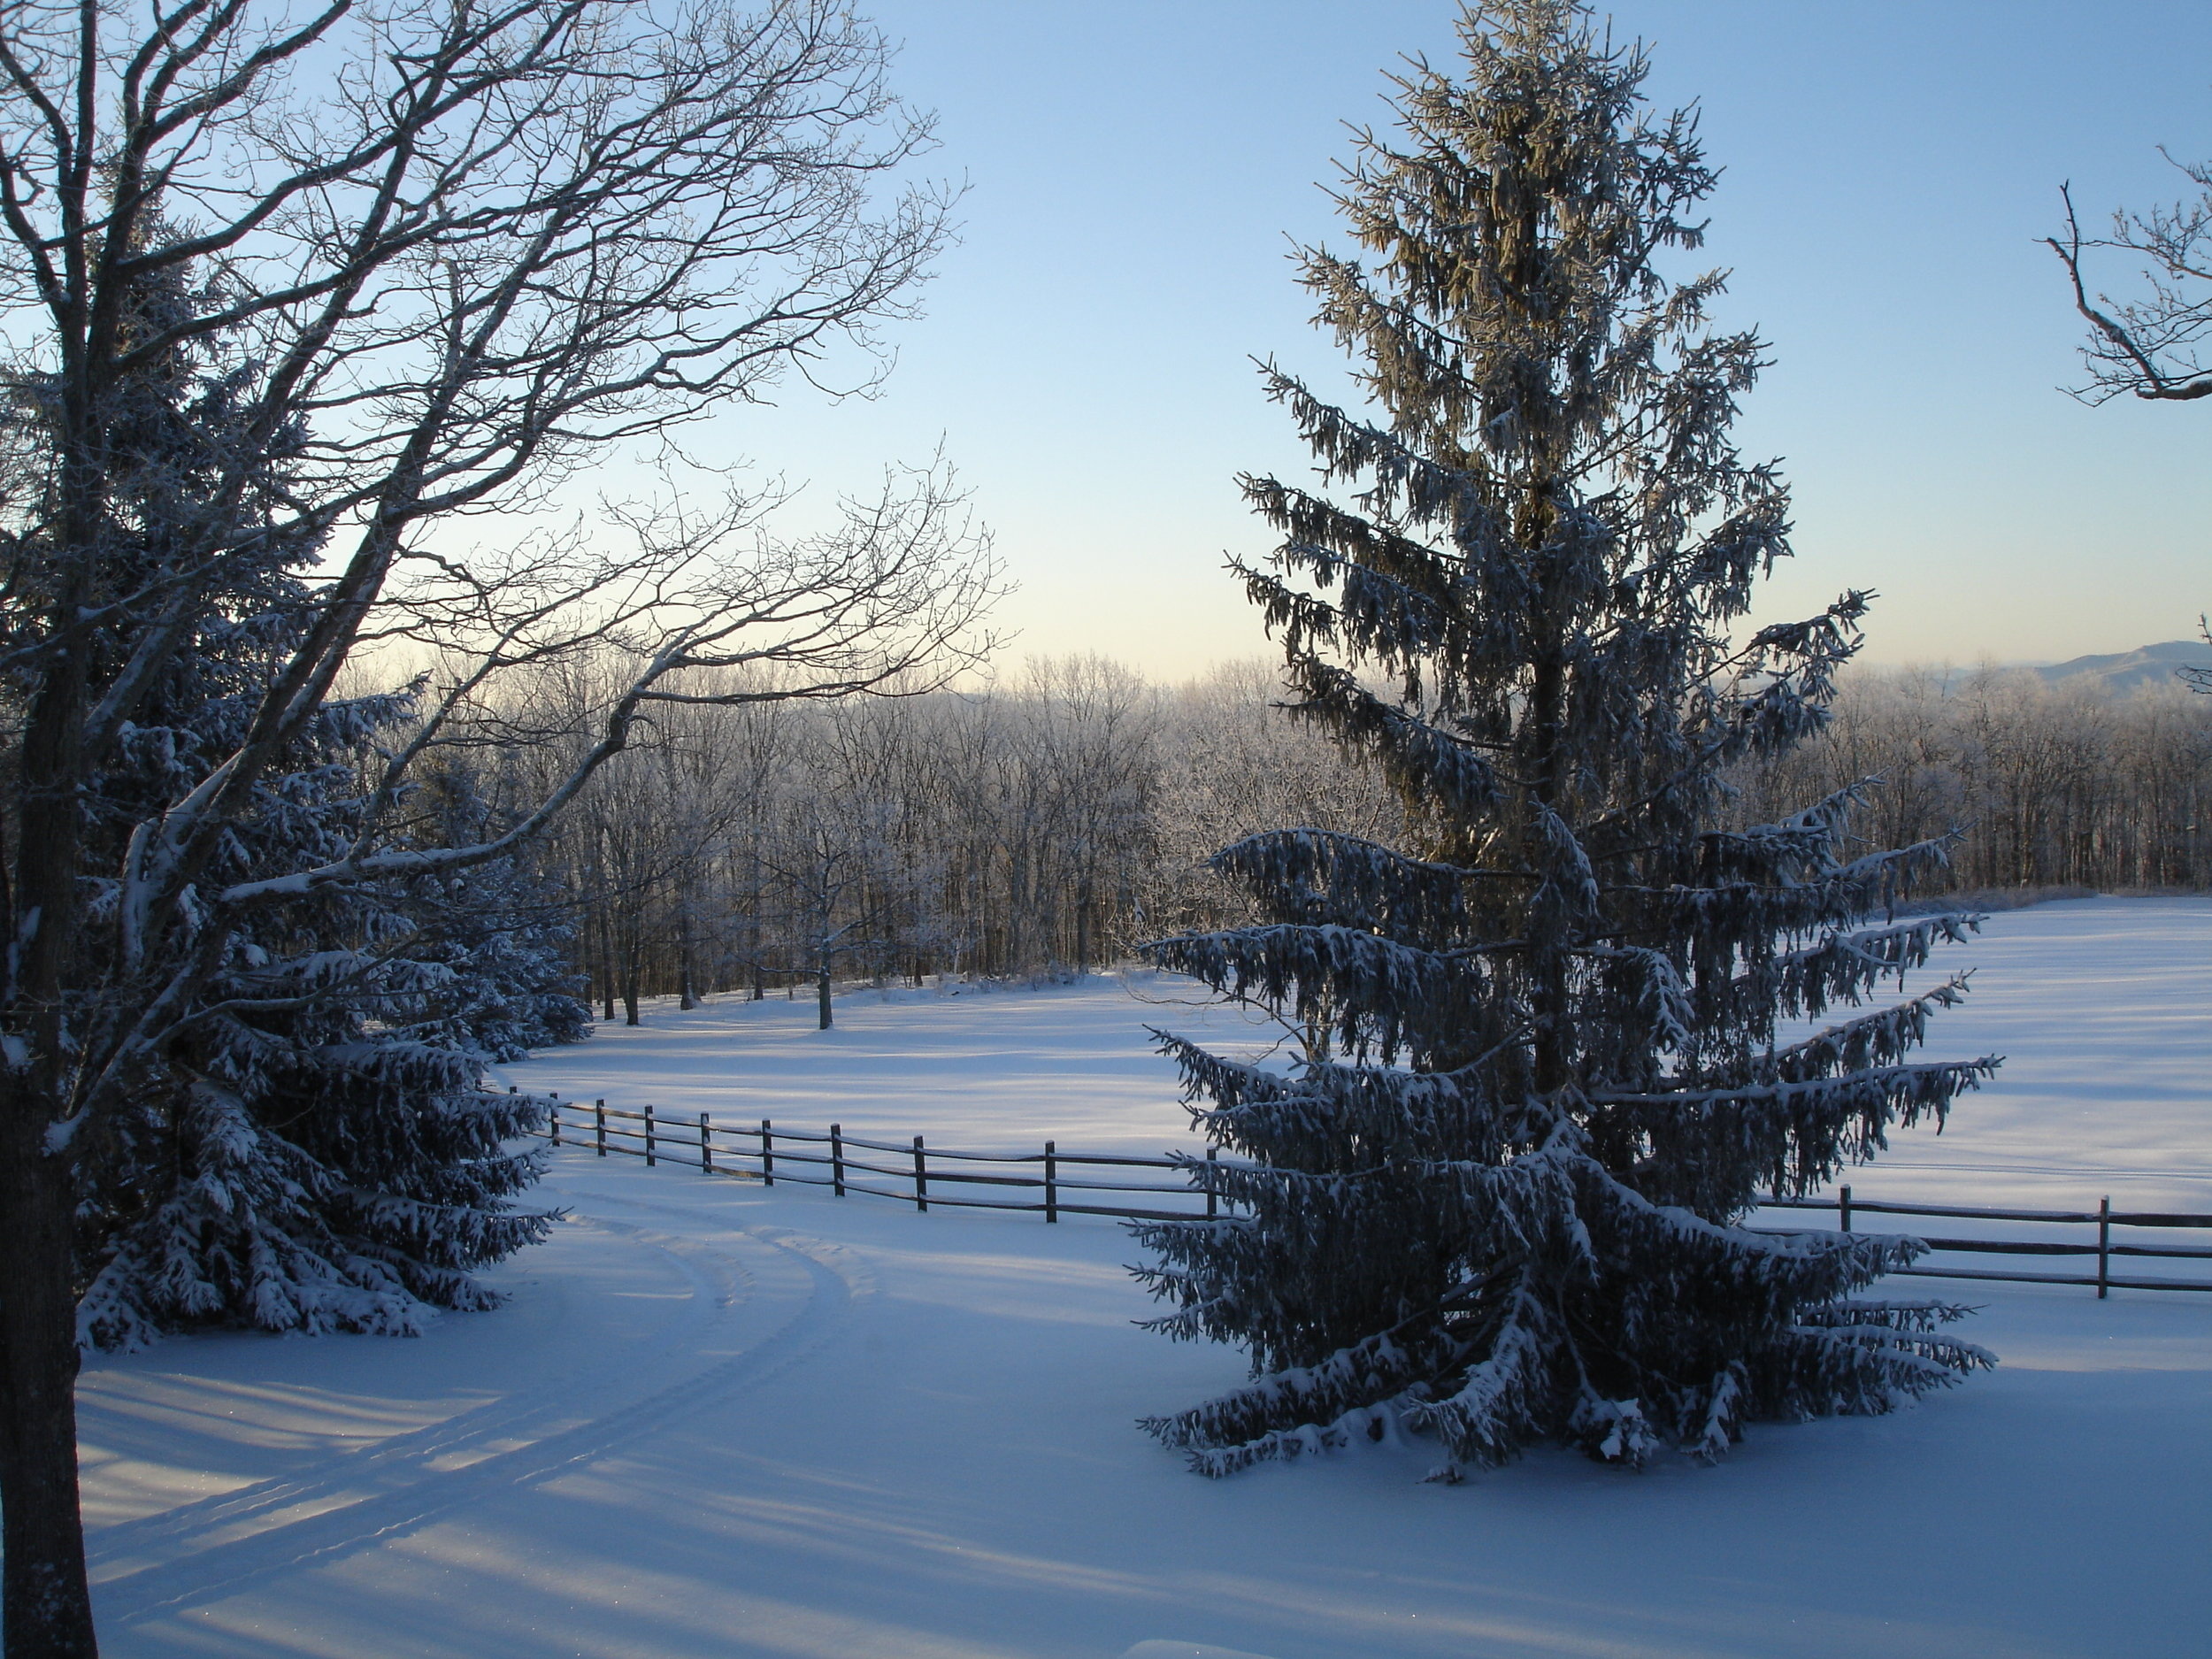 Winter Scene on the Farm